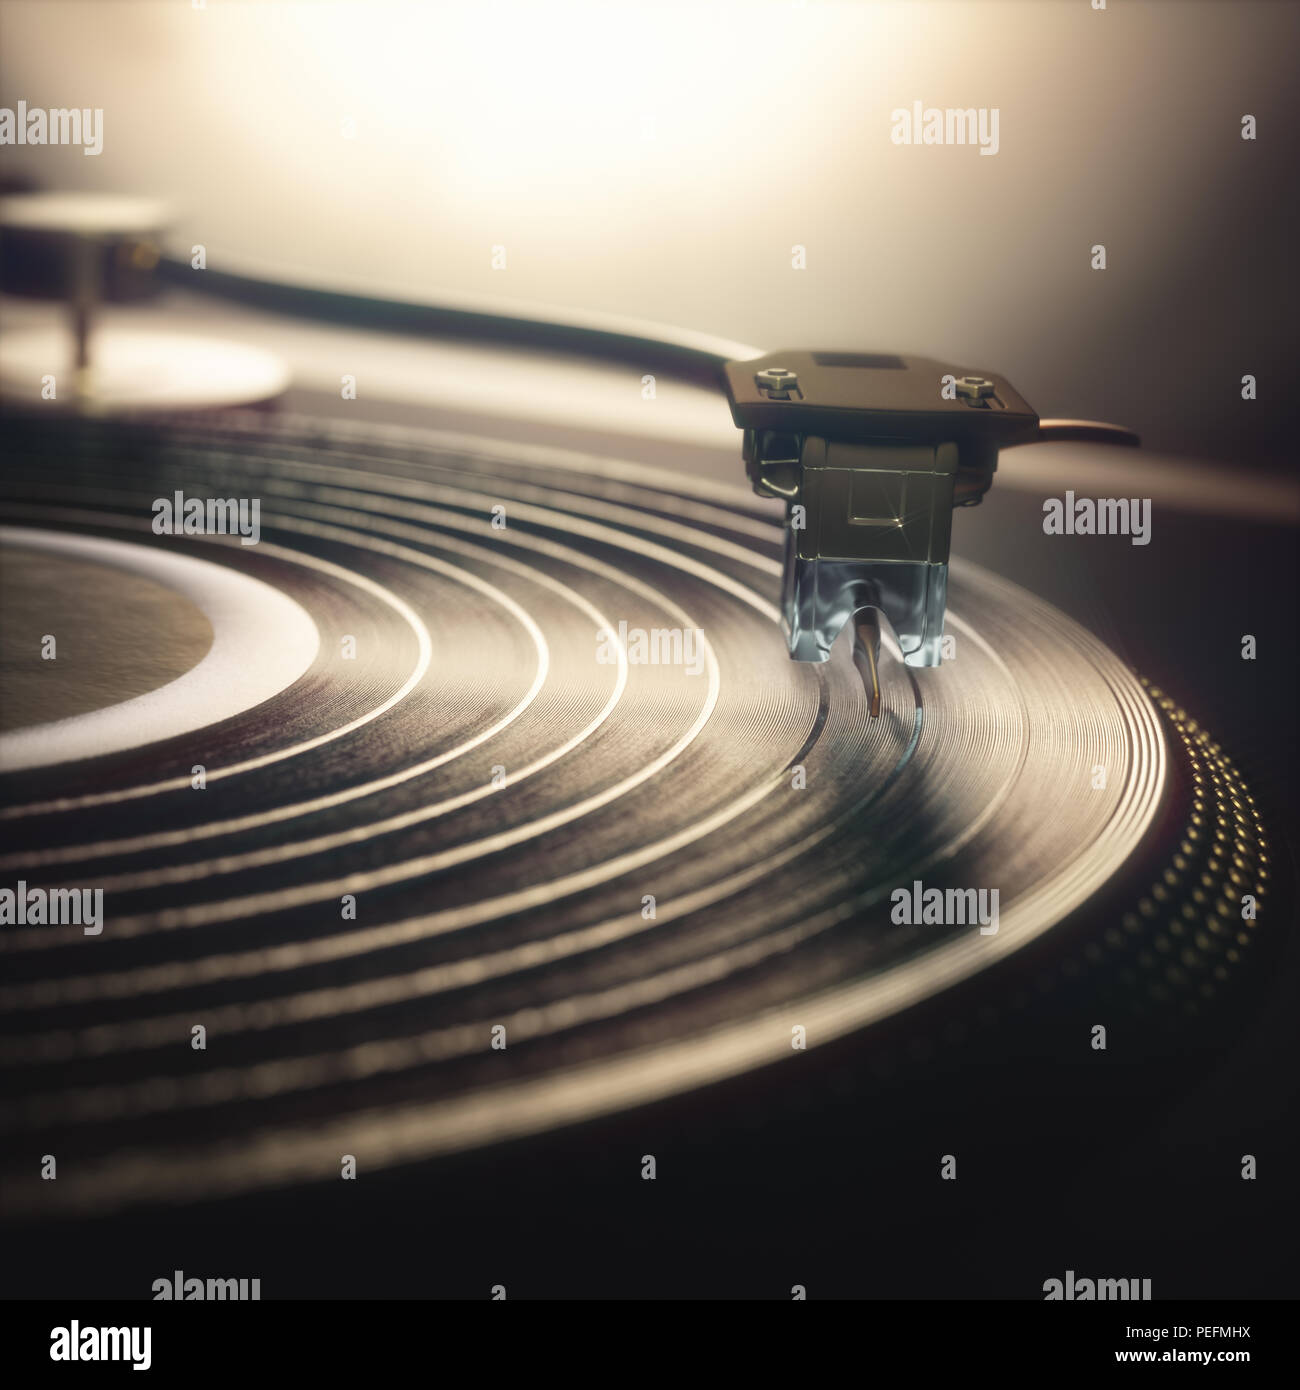 3D illustration. Vinyl record being played on old retro vintage disc jockey device. - Stock Image